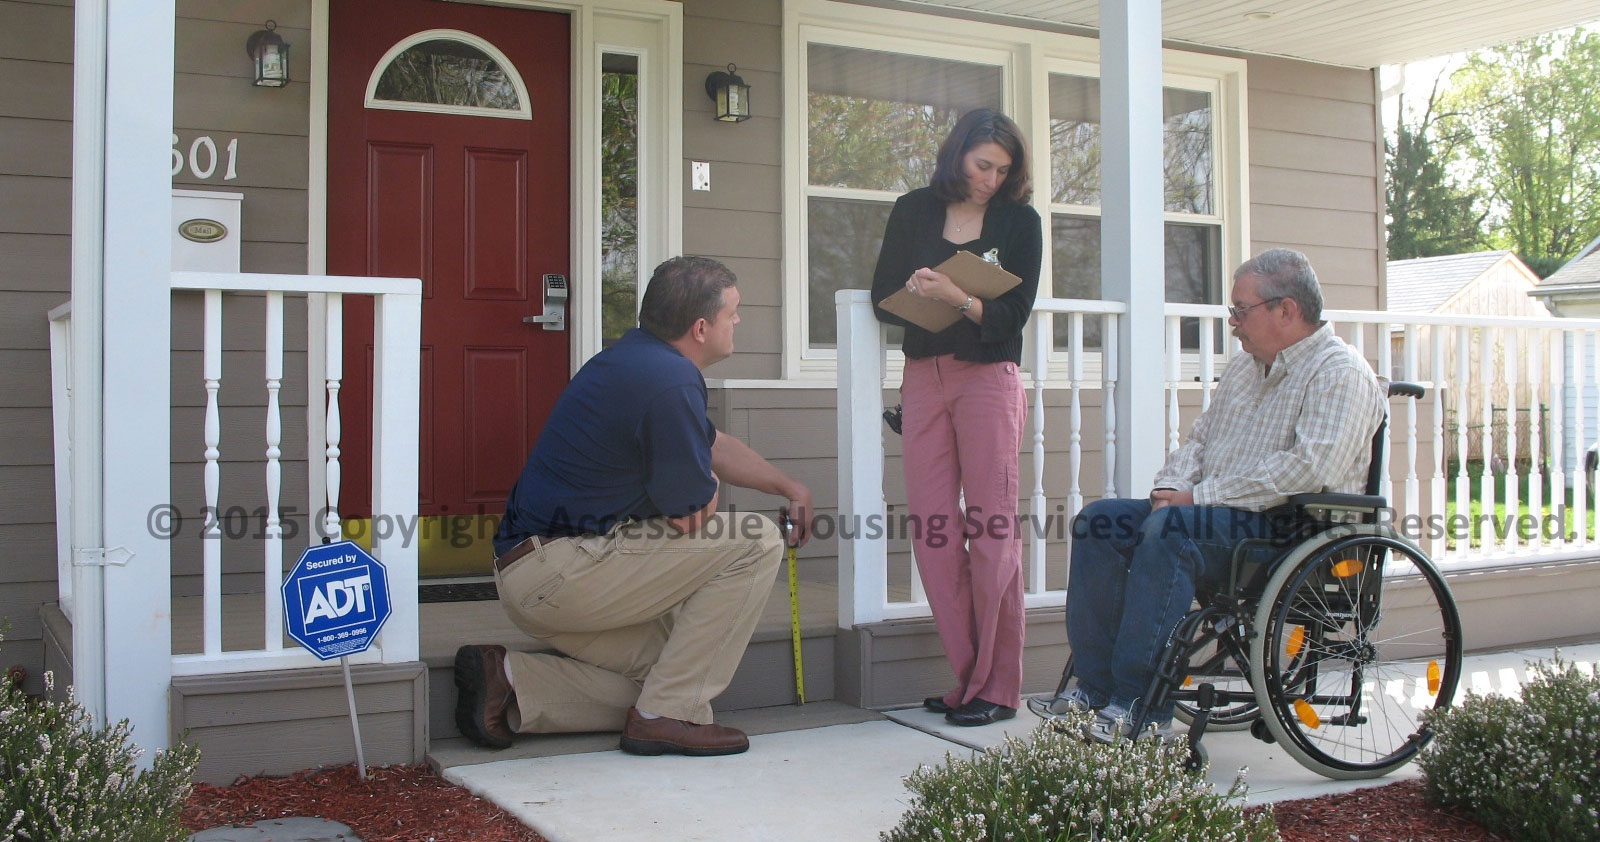 Measuring wheelchair accessible home entrance accessible for Wheelchair accessible housing